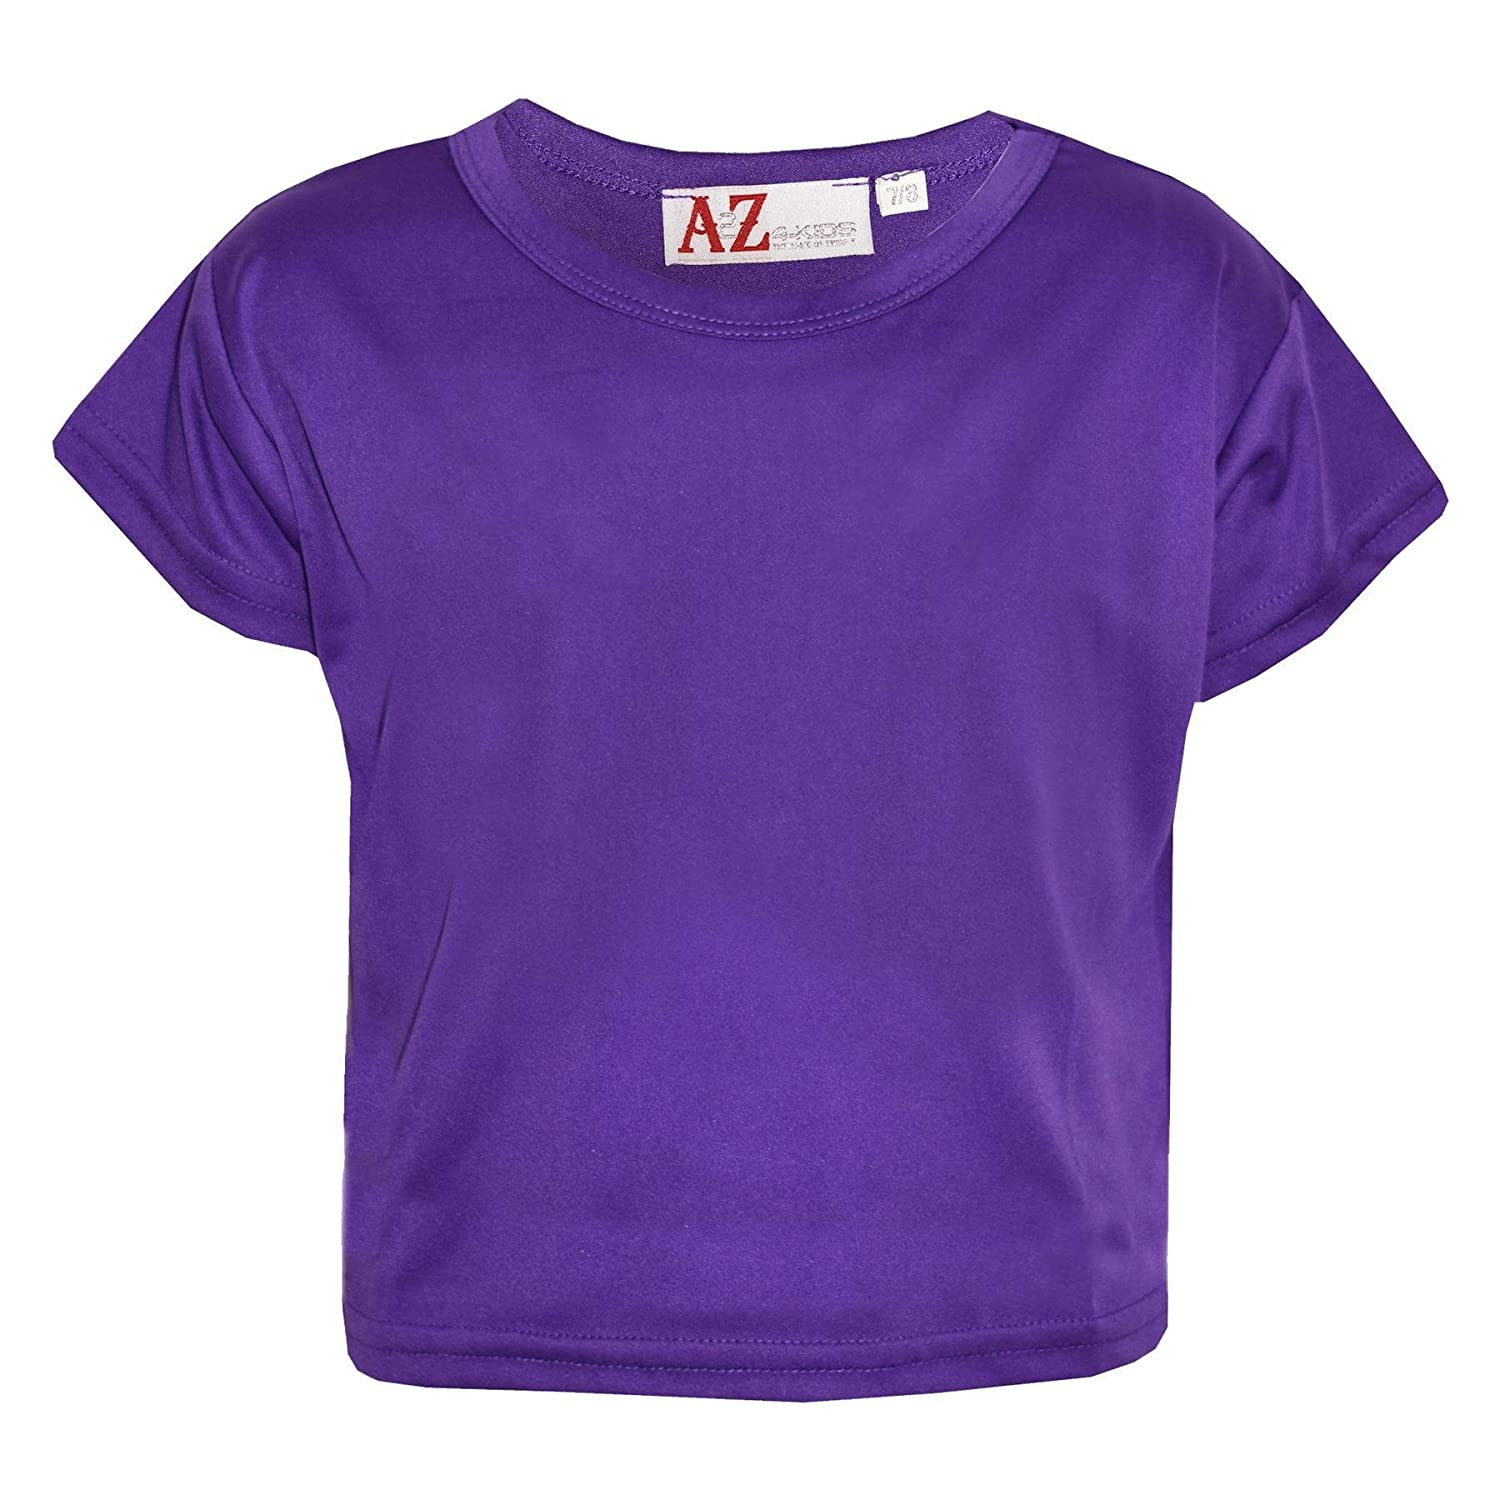 A2Z 4 Kids/® Girls Top Kids Plain Color Stylish Crop Top /& Fashion Skater Skirt Set New Age 7 8 9 10 11 12 13 Years